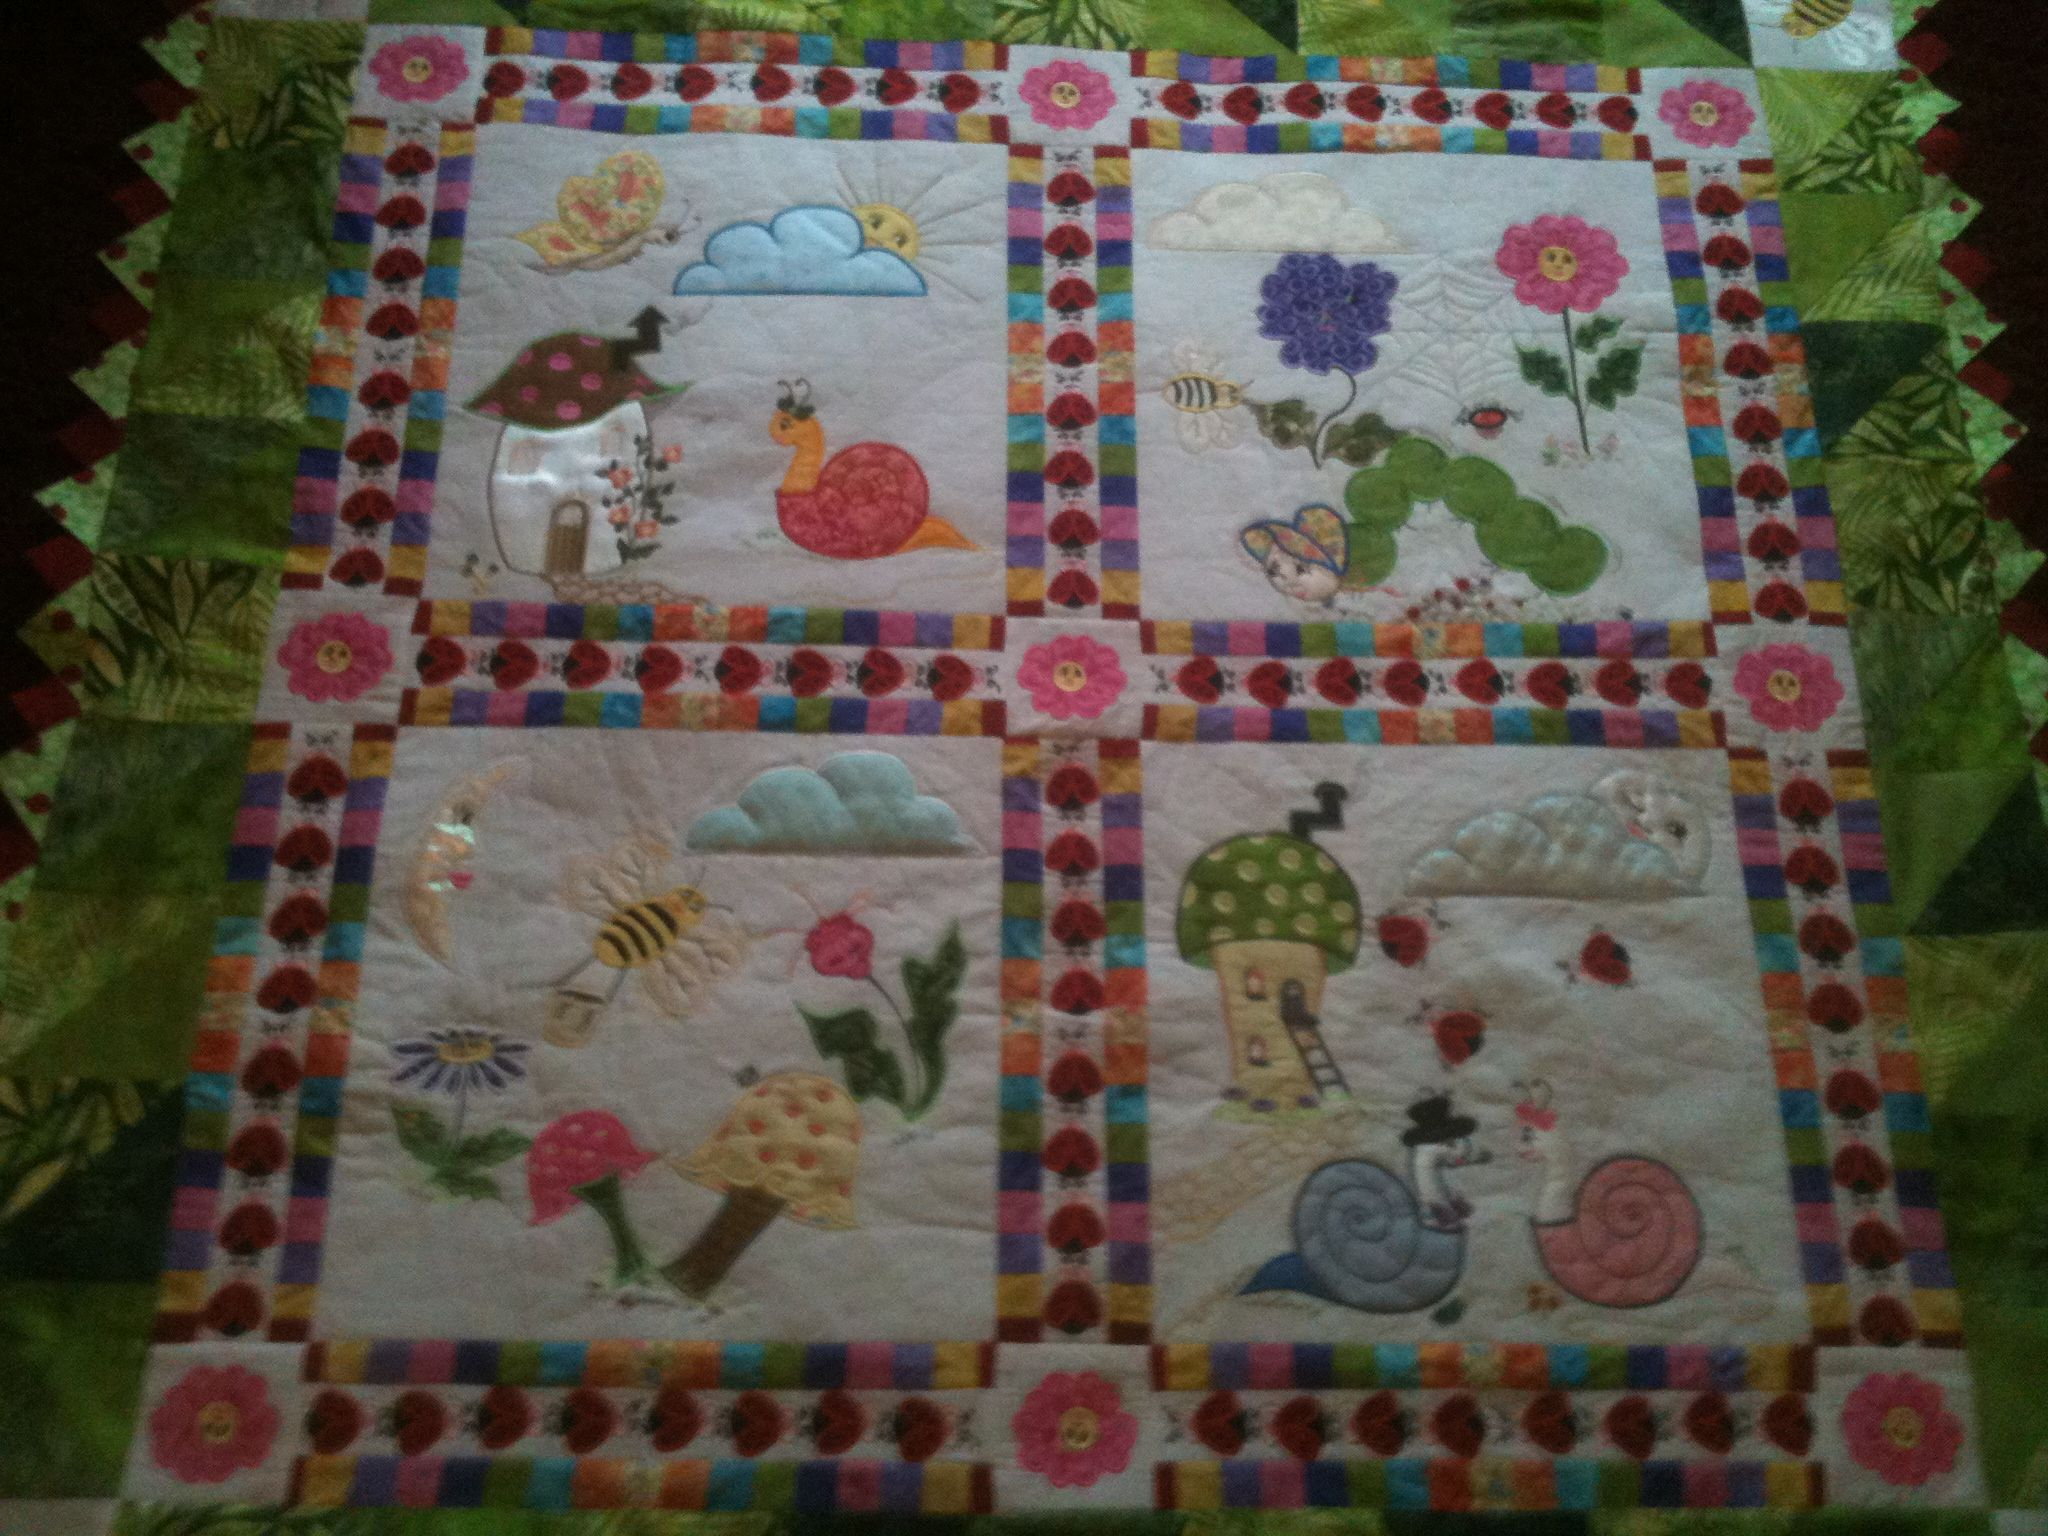 This Is My First Quilt The Design Is A Jenny Haskins Design Called Harvey S Garden This Project Is A C Machine Embroidery Quilts Machine Embroidery Designs